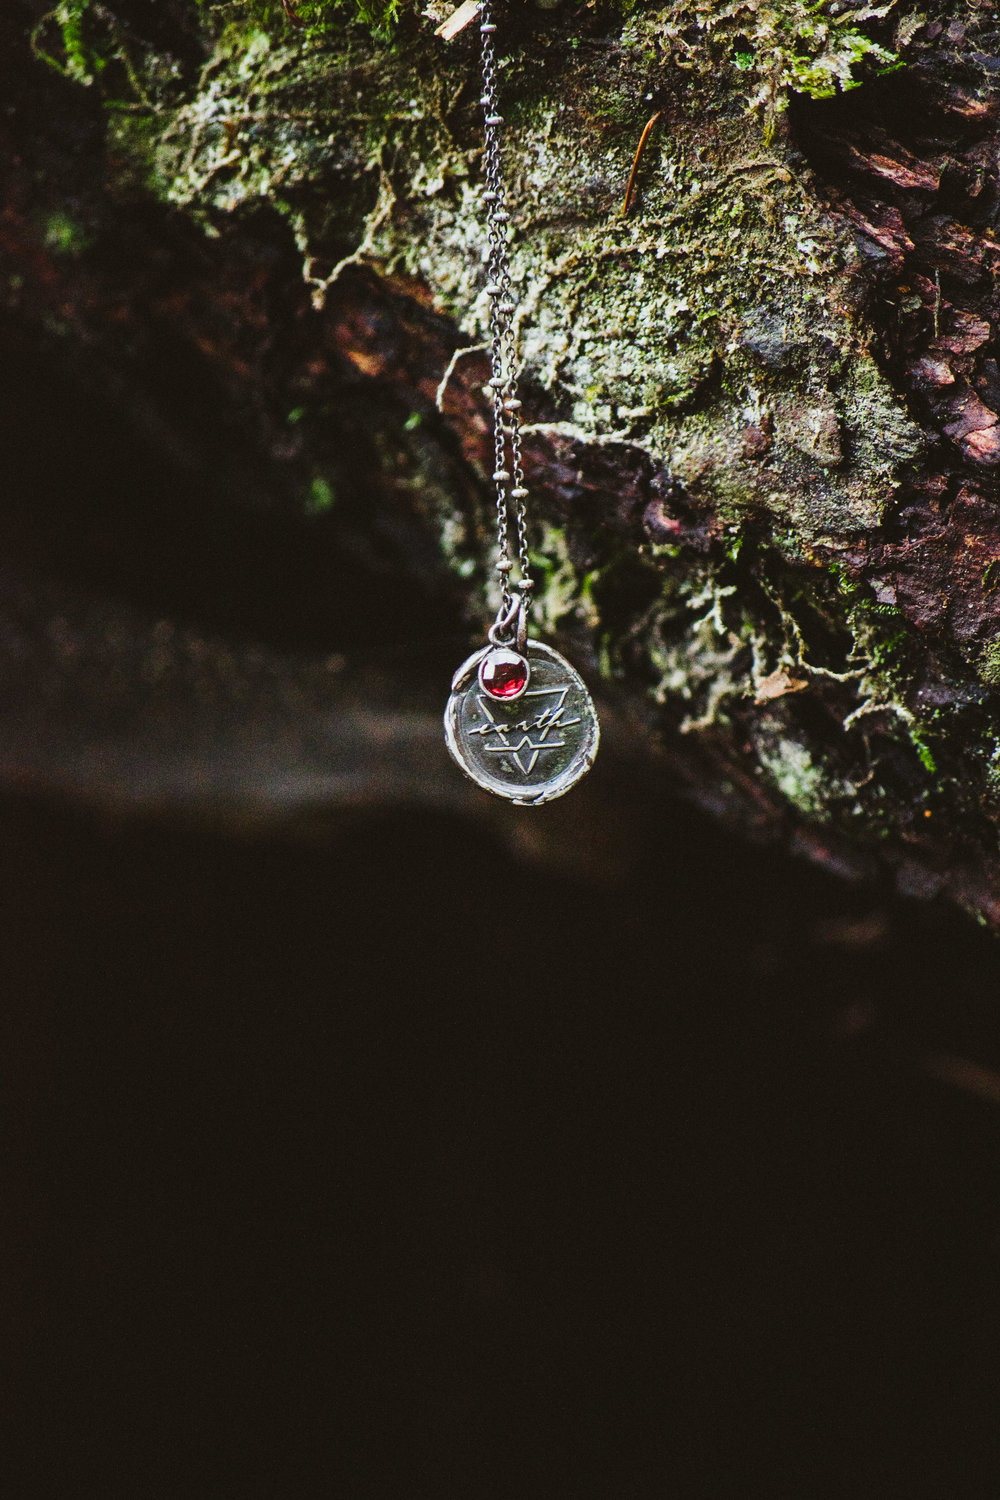 Earth - Earth is represented by red garnet.The earth element is feminine, deep, and strong. It is dark, rich soil, rocky boulders, and intricate root systems. It is the warm pulse deep within the core of mother earth; the heartbeat of Gaia.Earth grounds, nurtures, and sustains.